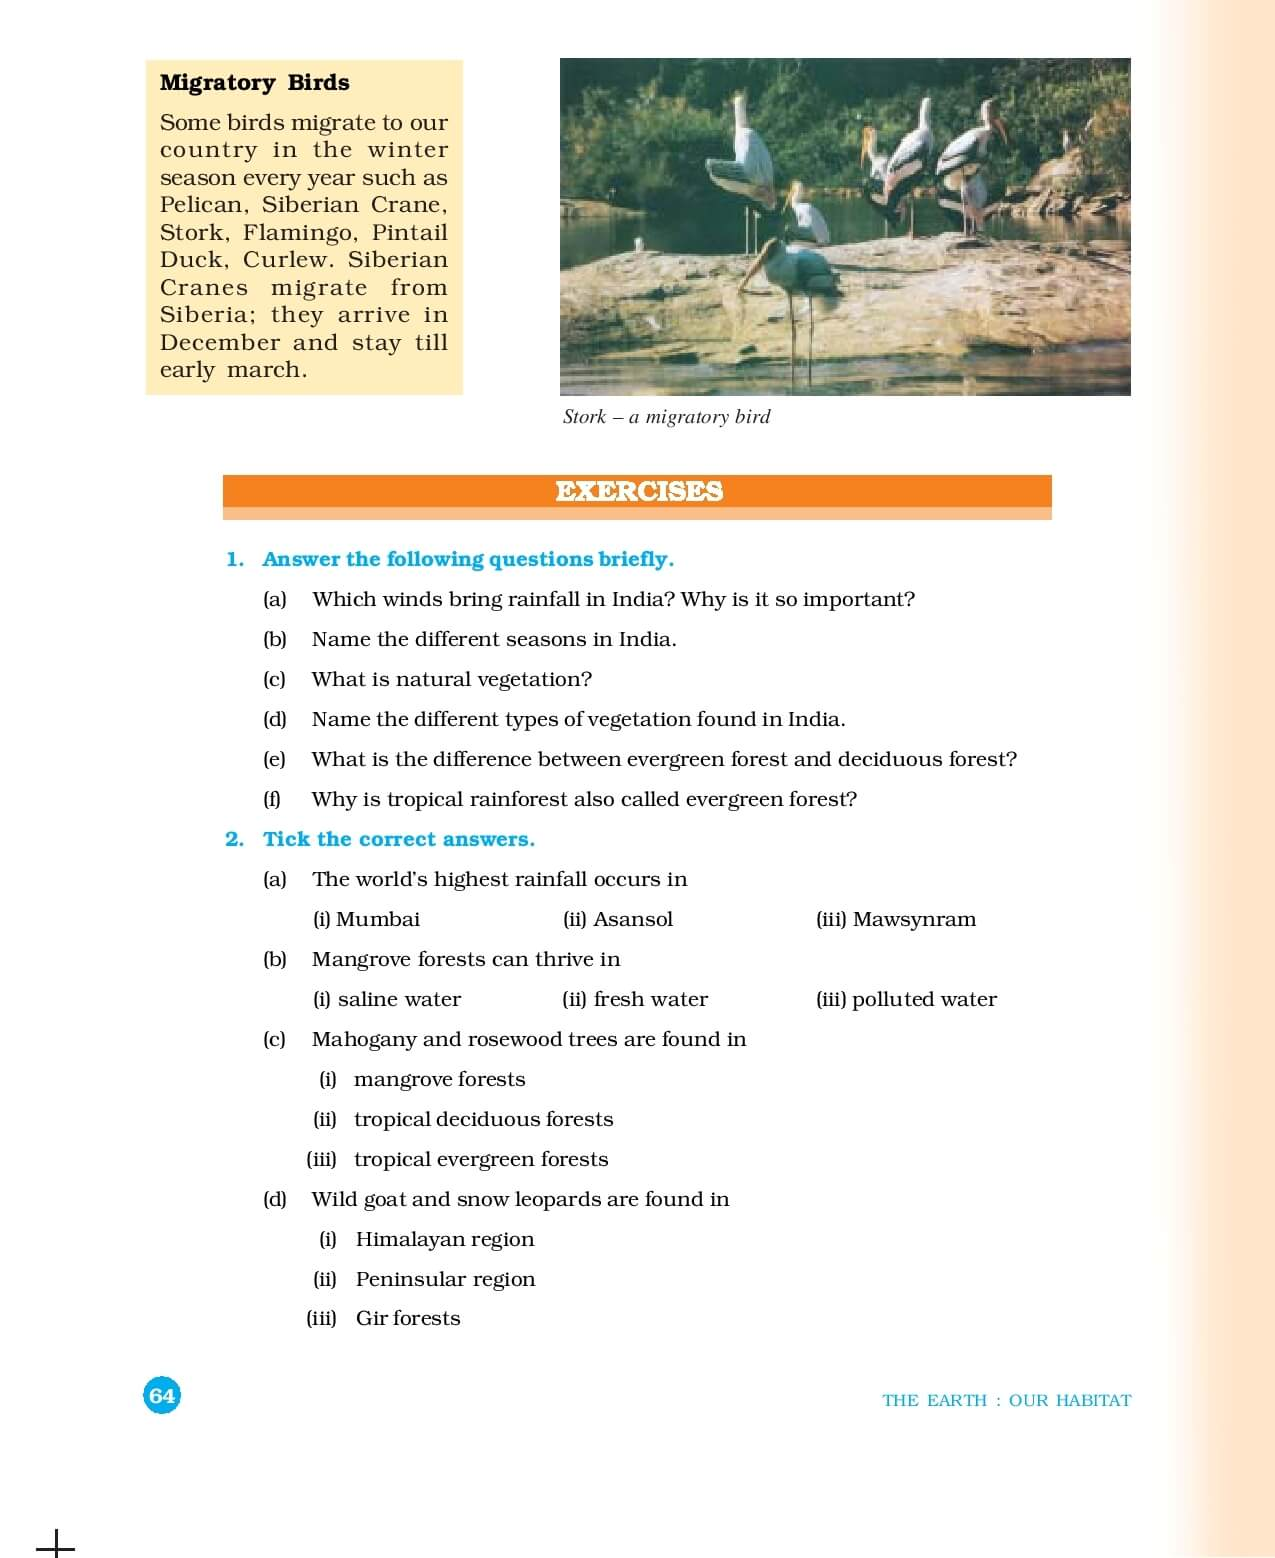 Geography ( Geography : The Earth Our Habitat ) - CBSE ...